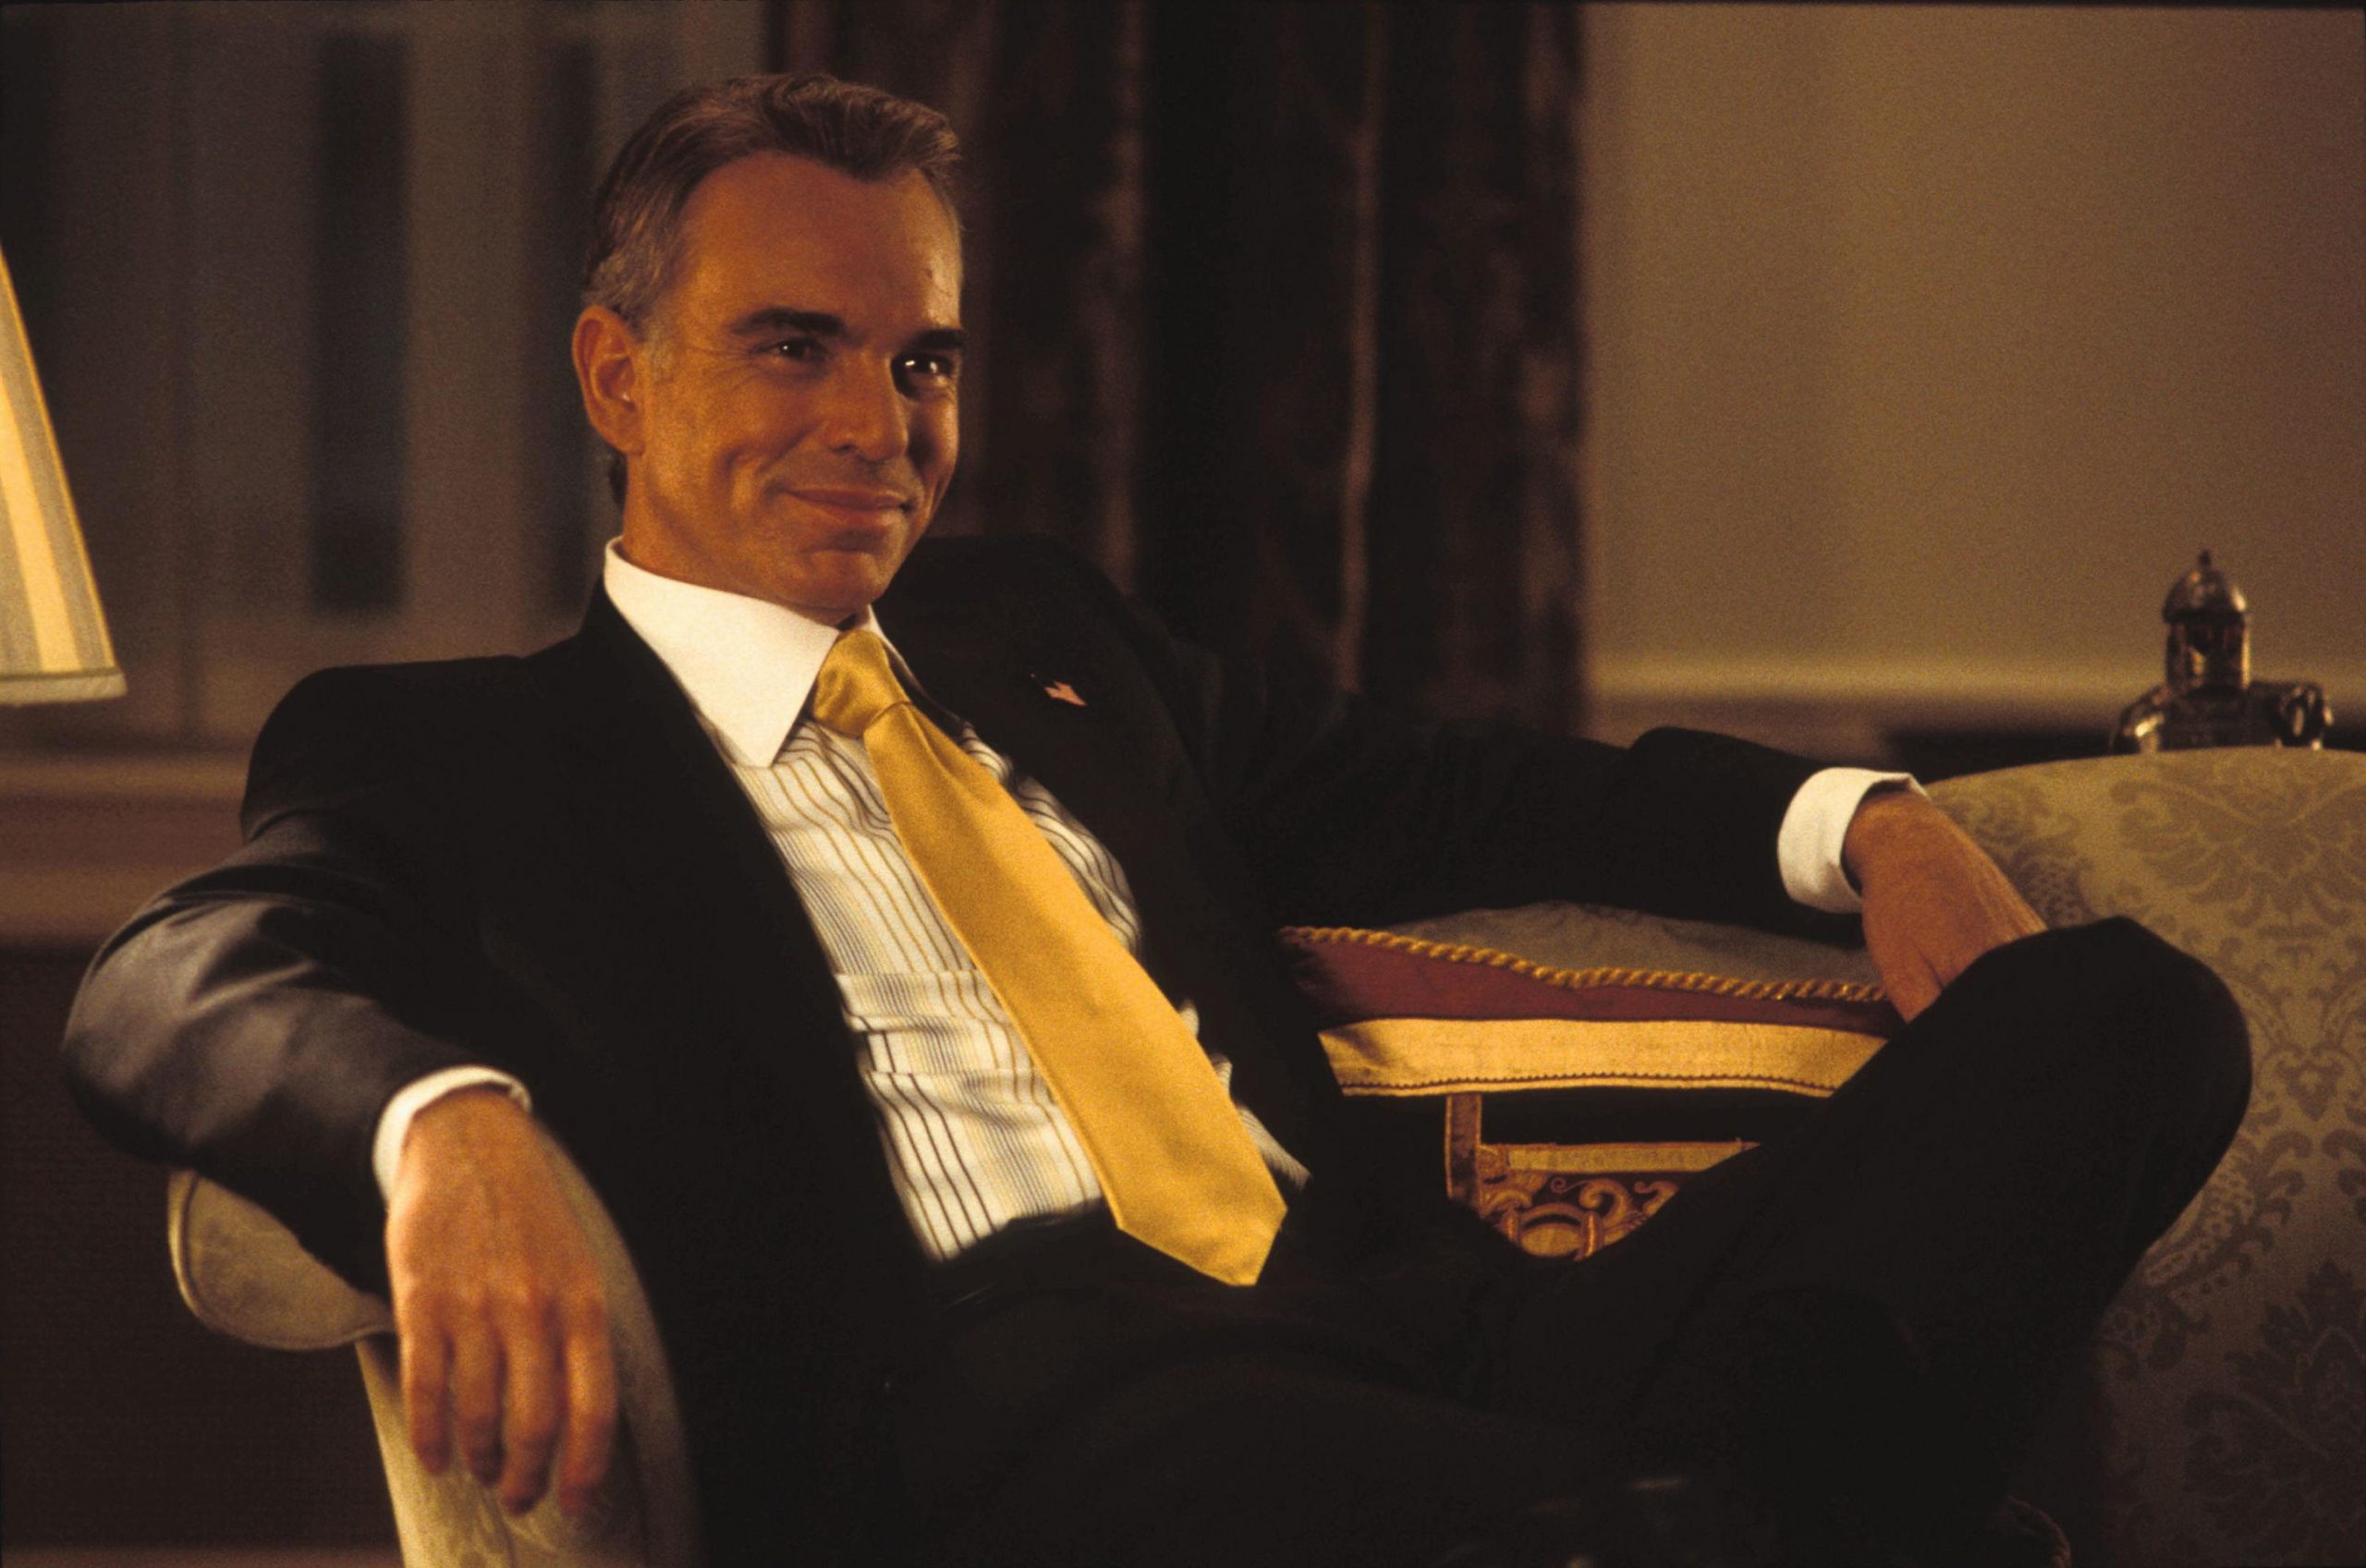 An image from Love Actually showing Billy Bob Thornton as the president looking very smug